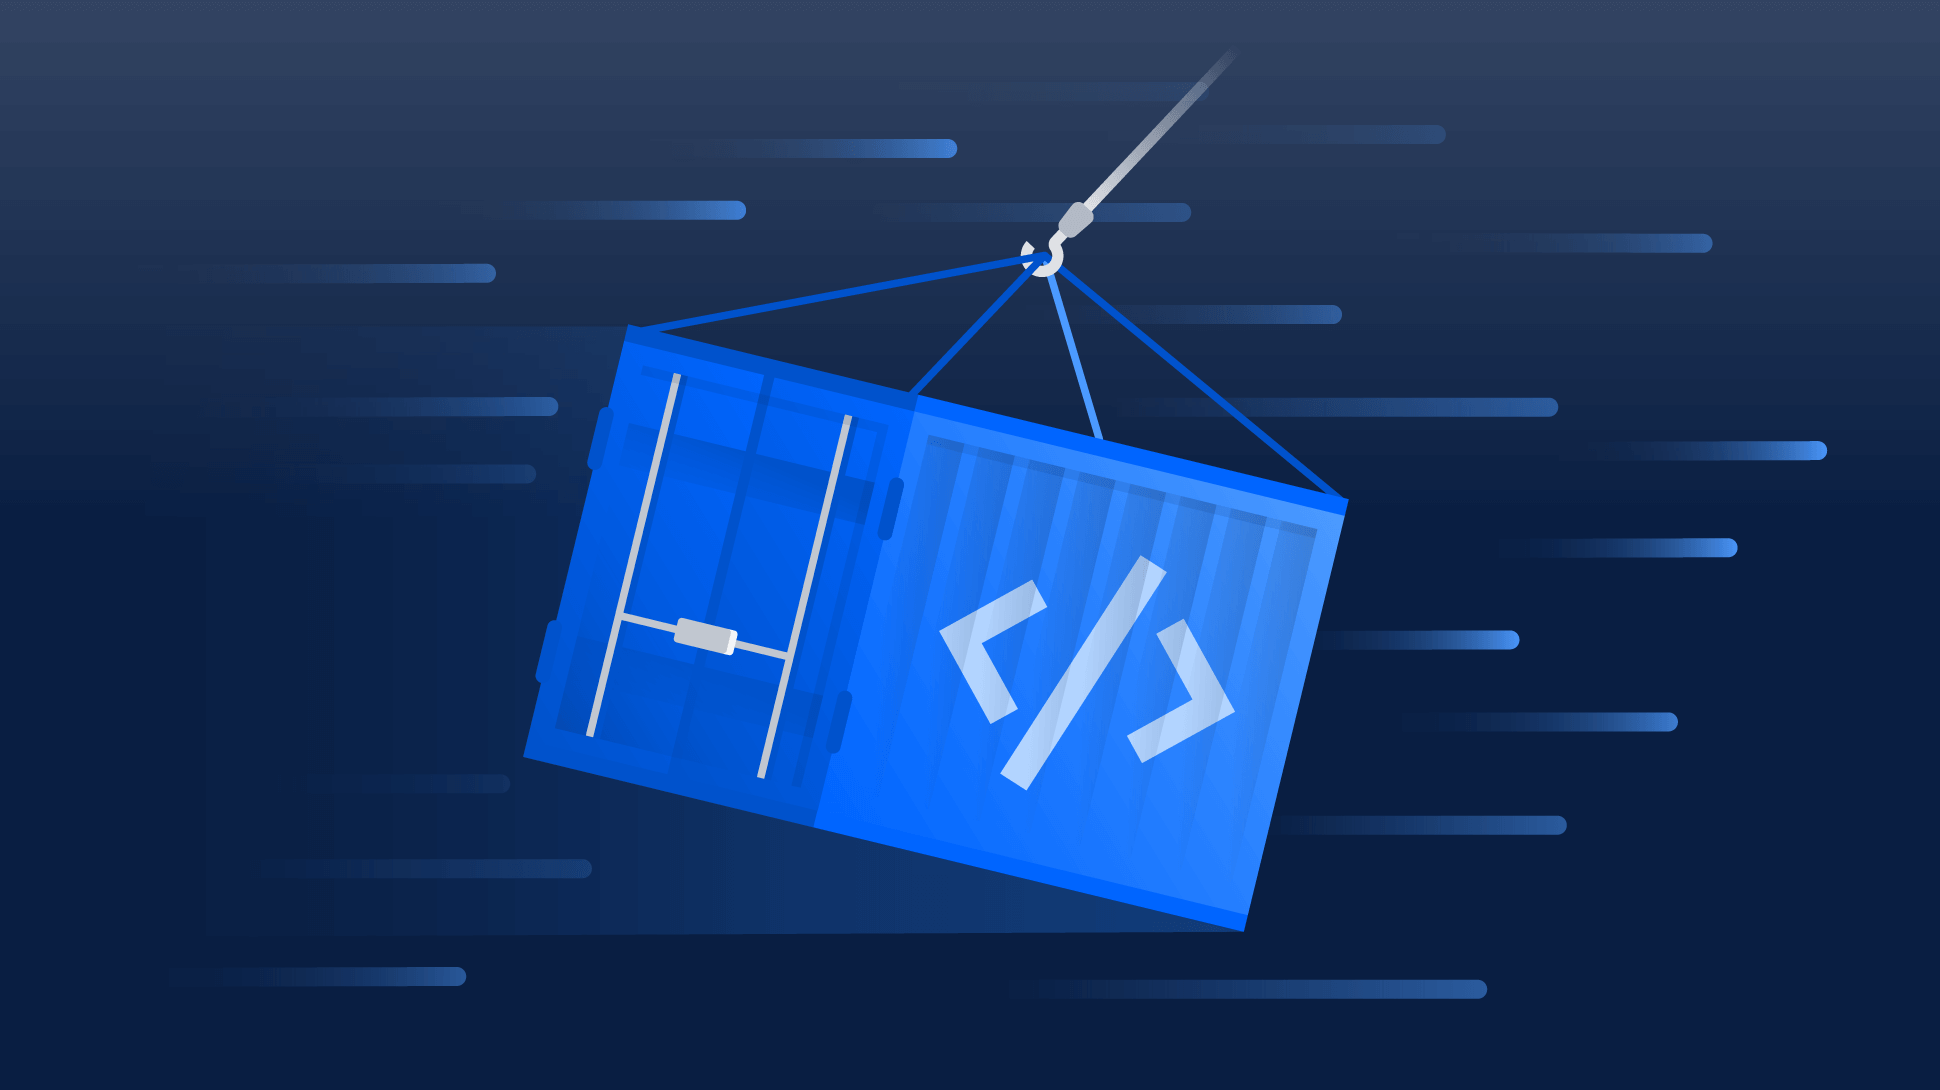 Atlassian Data Center on Kubernetes: Why you should use Kubernetes and Docker for your Data Center deployment